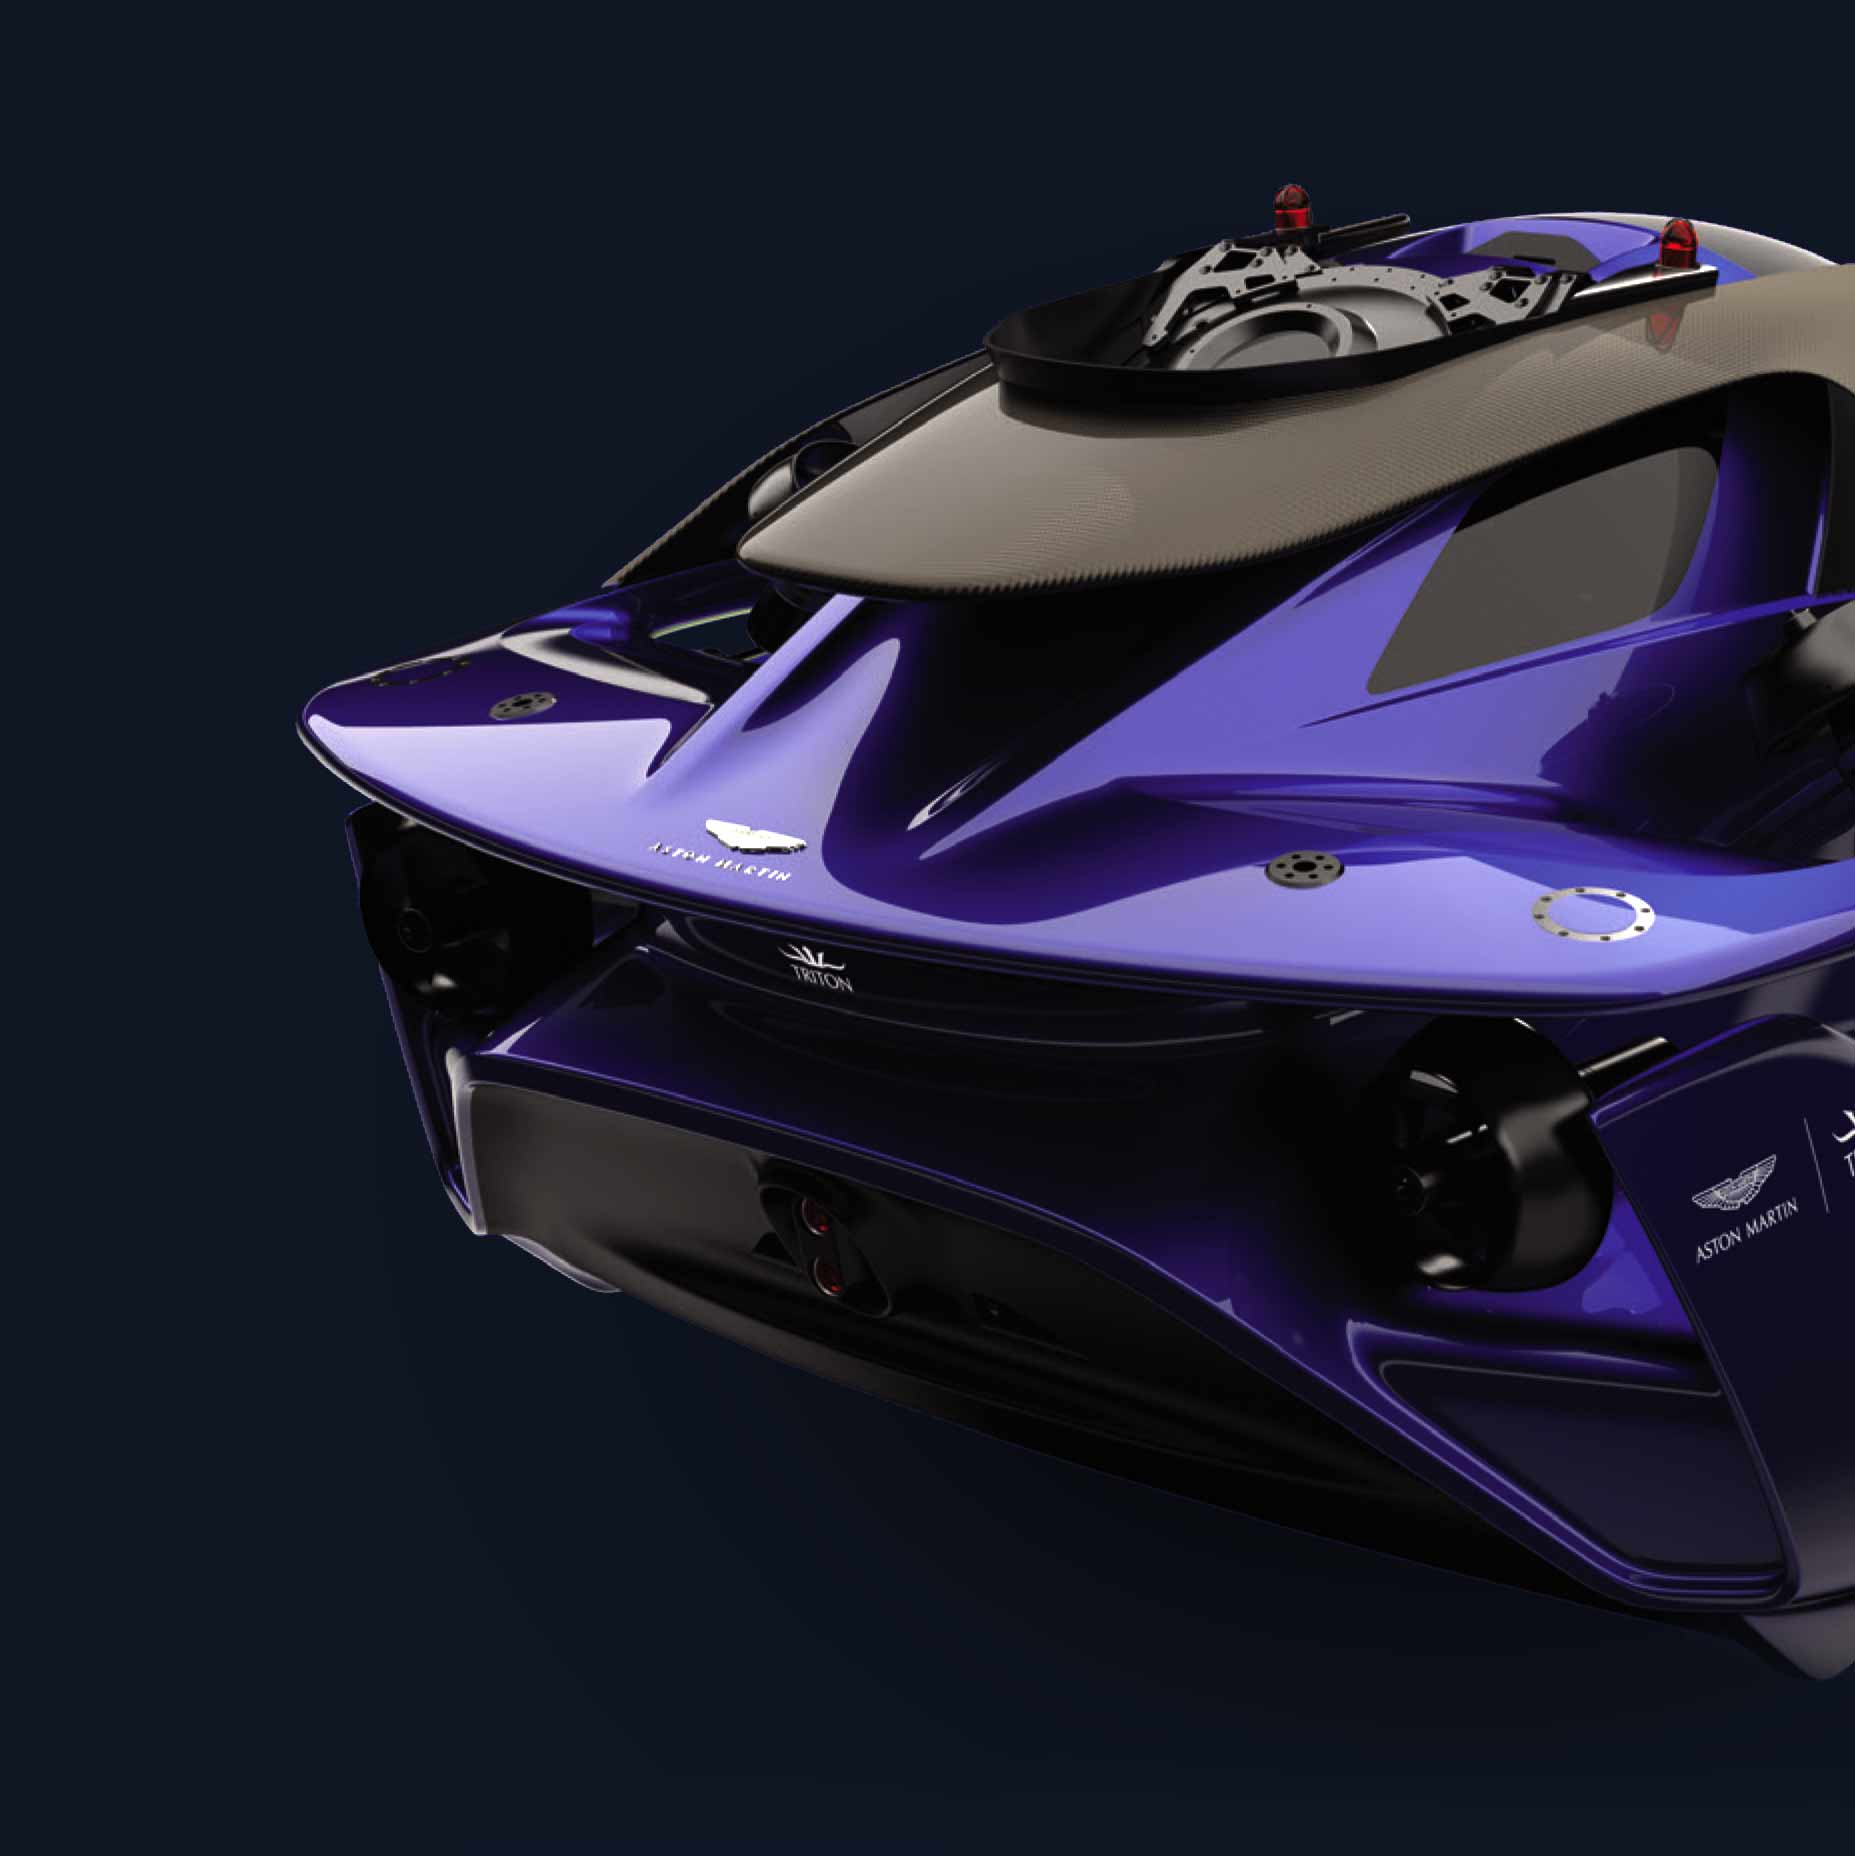 Project Neptune's aft-end with signature Aston Martin rear-diffuser and spoiler-like design